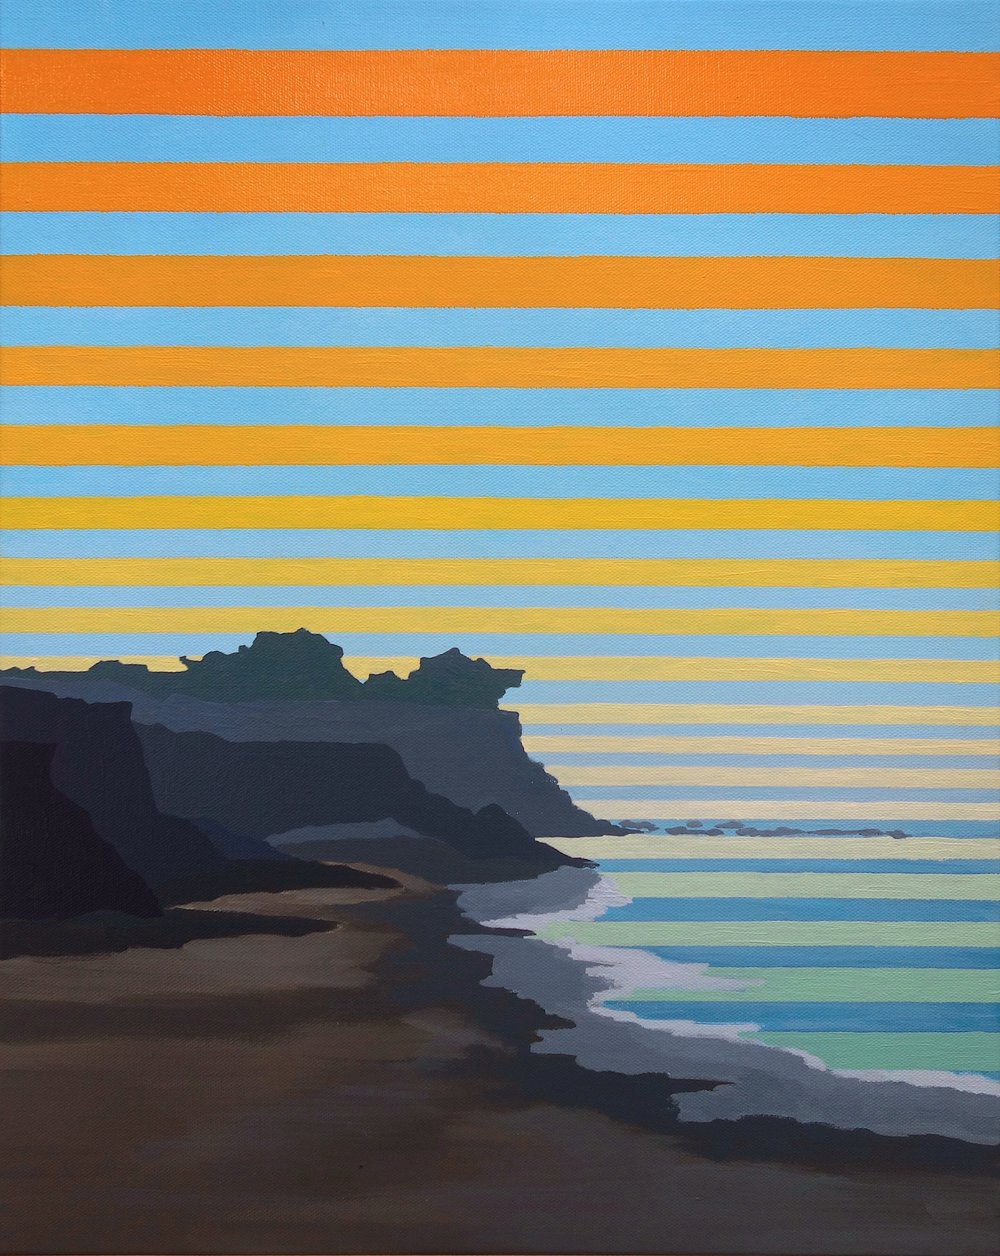 """Cambria, 2016. Oil and Acrylic on Canvas. 20""""x16"""" (51x41cm)"""